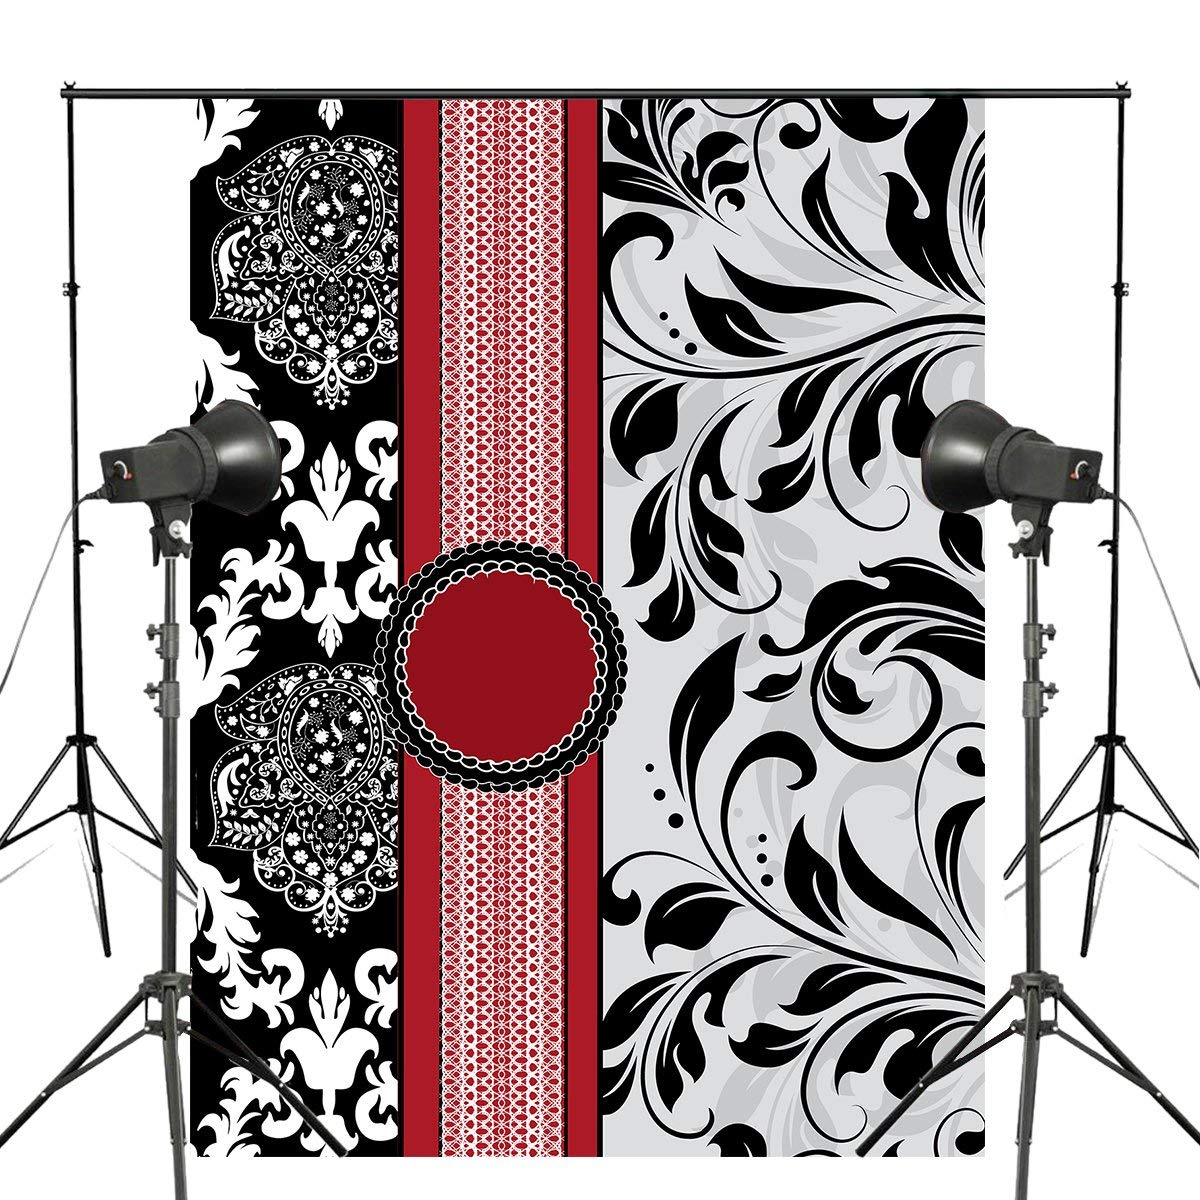 Classic European Pattern Photography Backdrop Flower Shape photo studio backgound 5x7ft Classical mural wall backdrops-in Photo Studio Accessories from Consumer Electronics